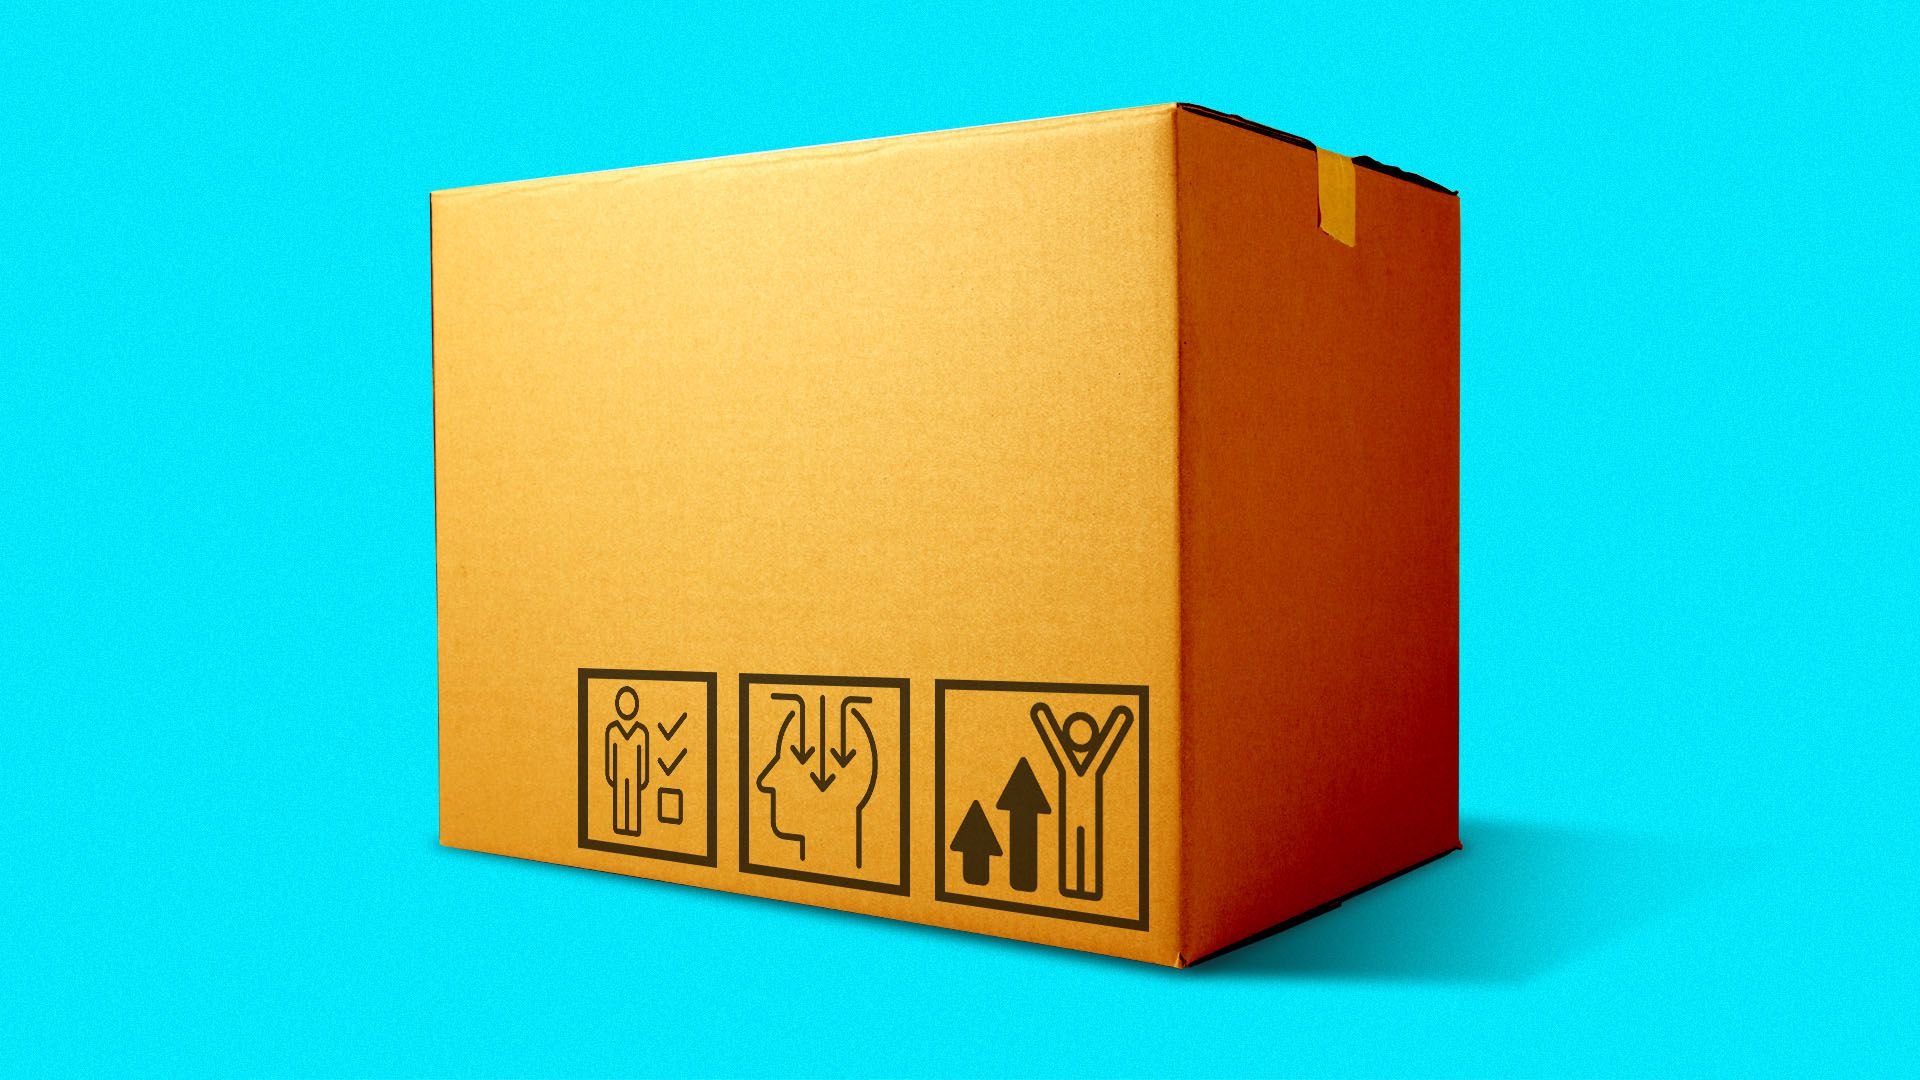 Illustration of a cardboard delivery box with icons related to improving worker skills on the side